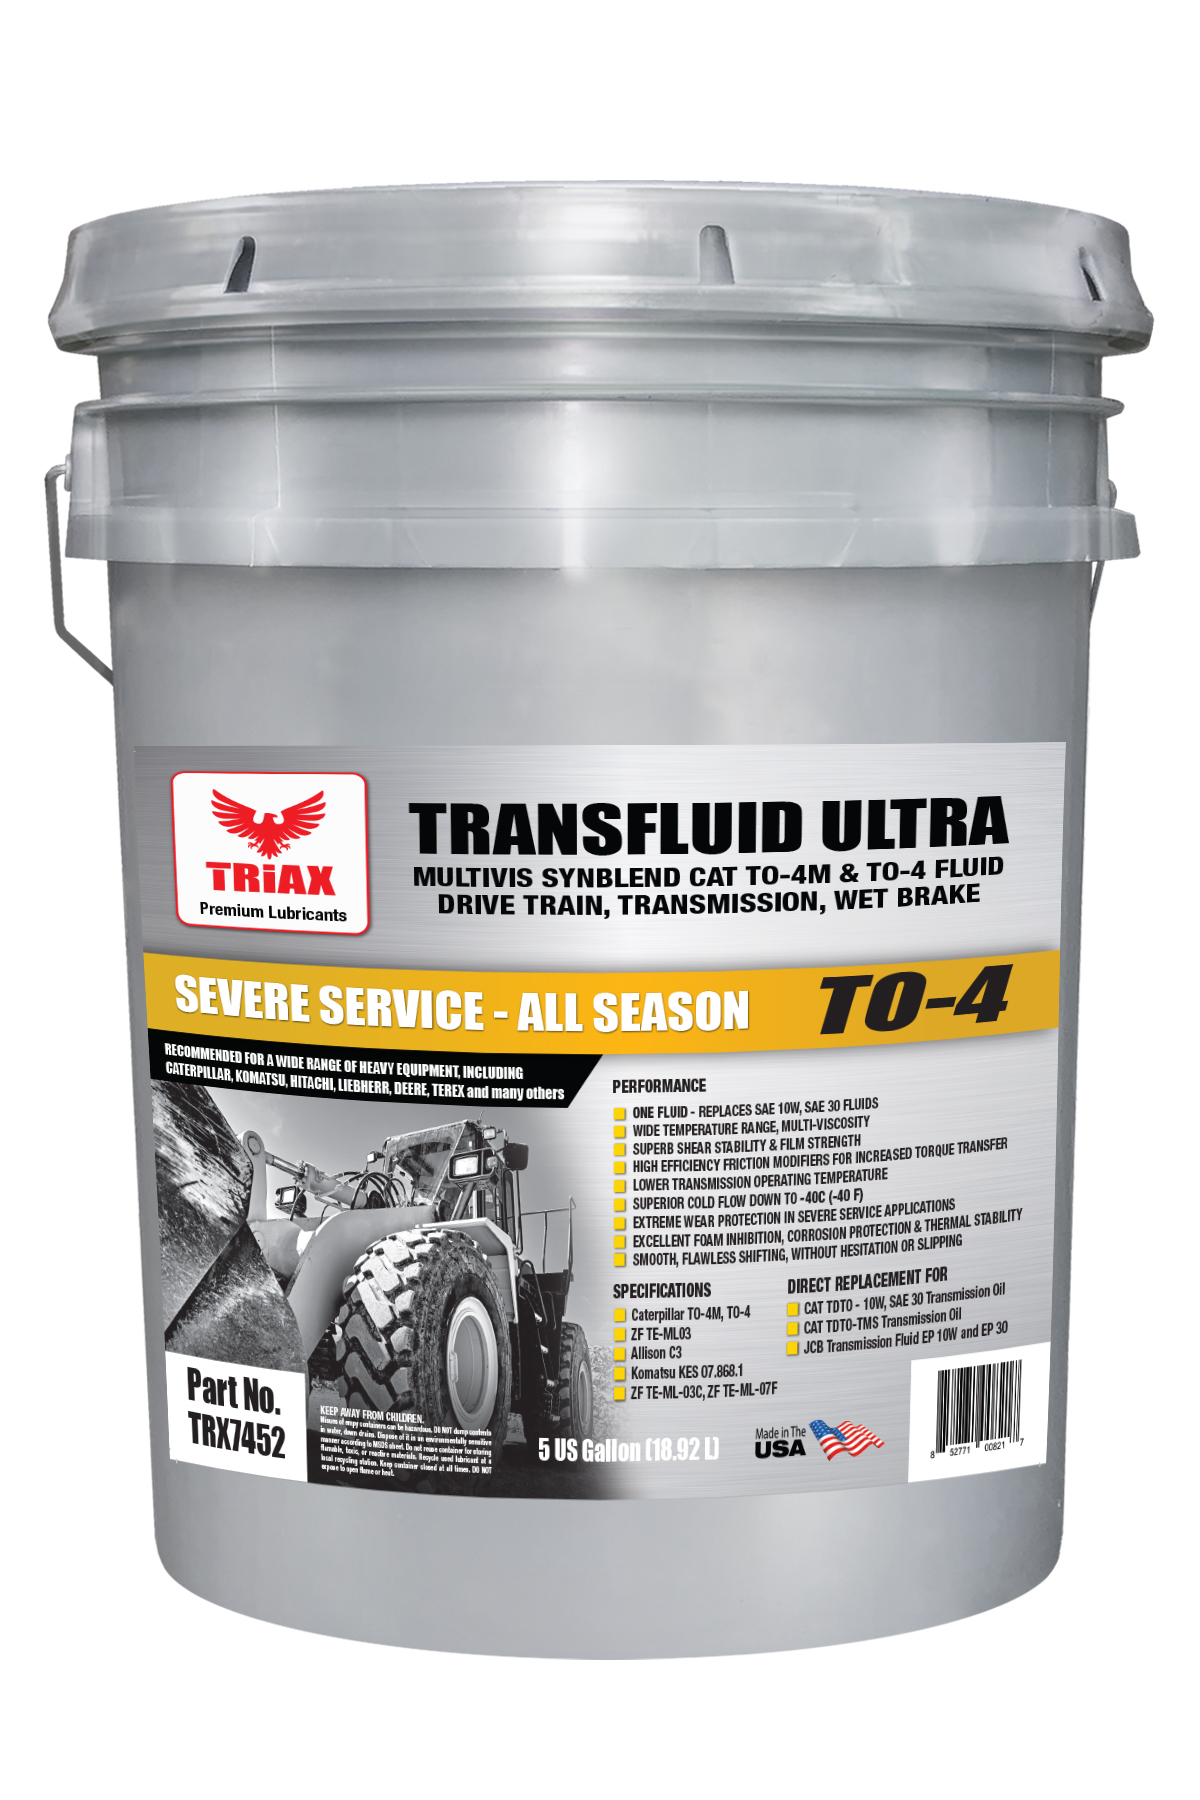 TRIAX TRANSFLUID ULTRA CAT TO-4 Multi-Viscosity - Final Drive | Drive Train Fluid